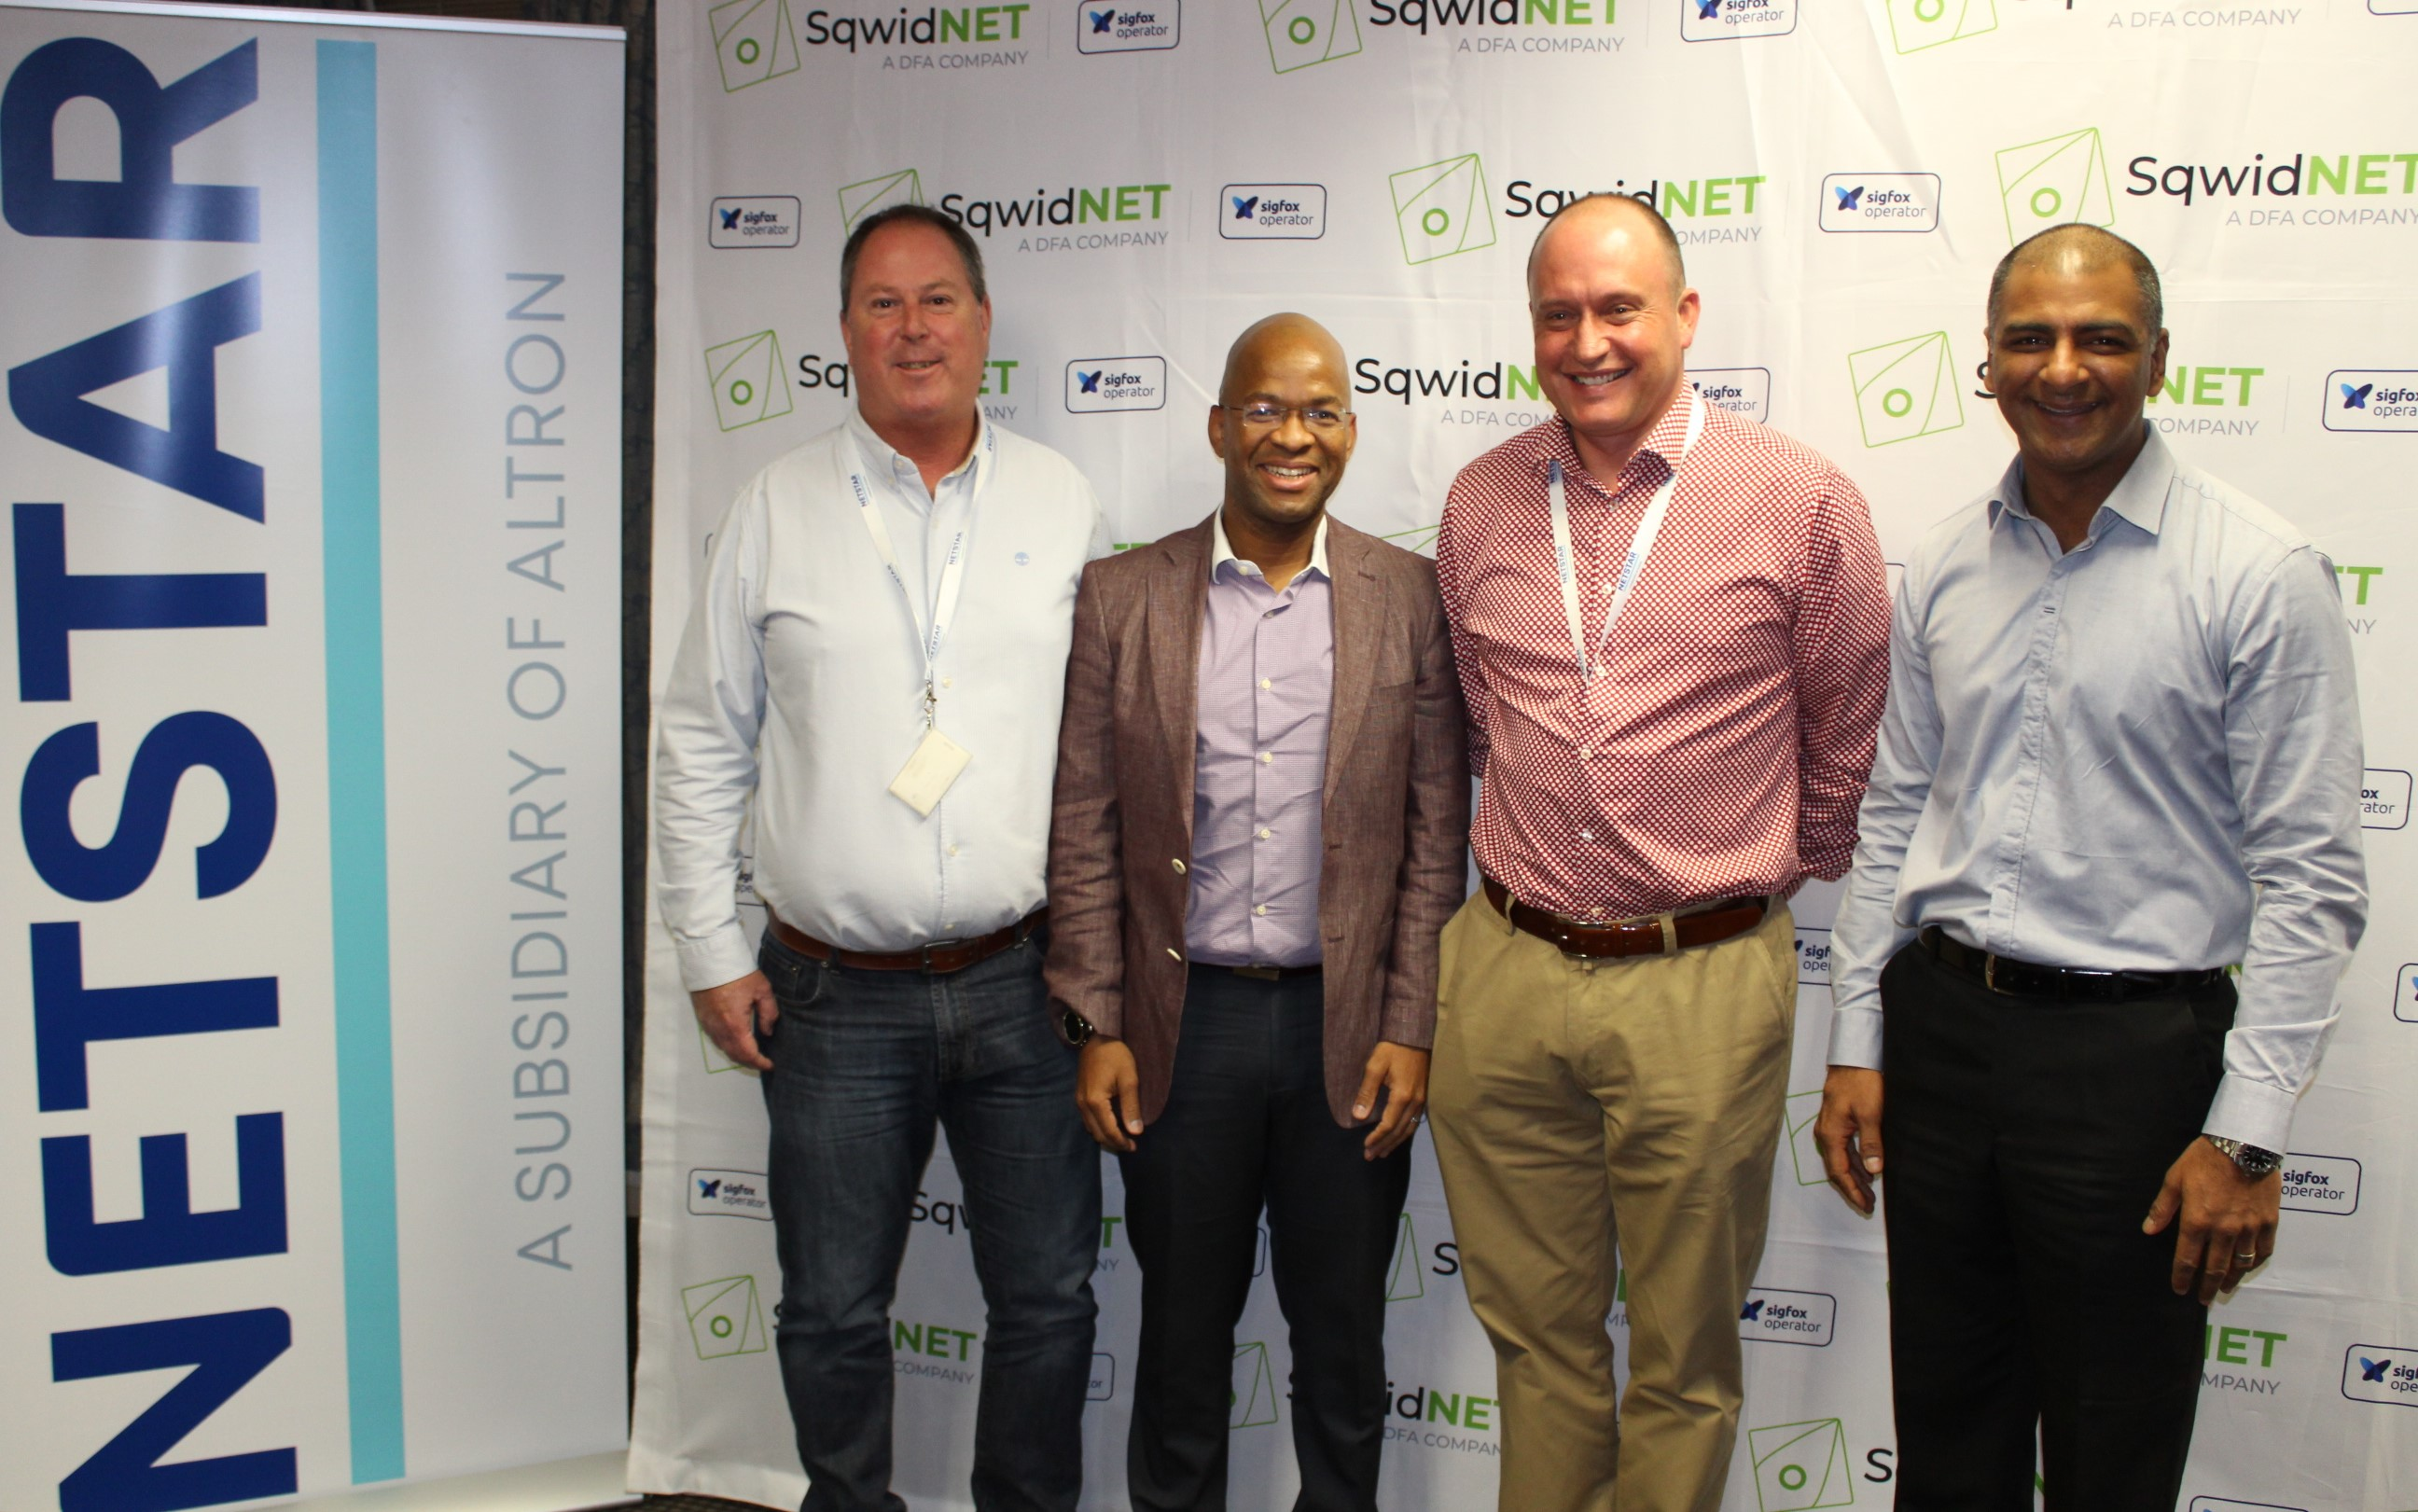 SqwidNet and Altron's Netstar sign partnership agreement